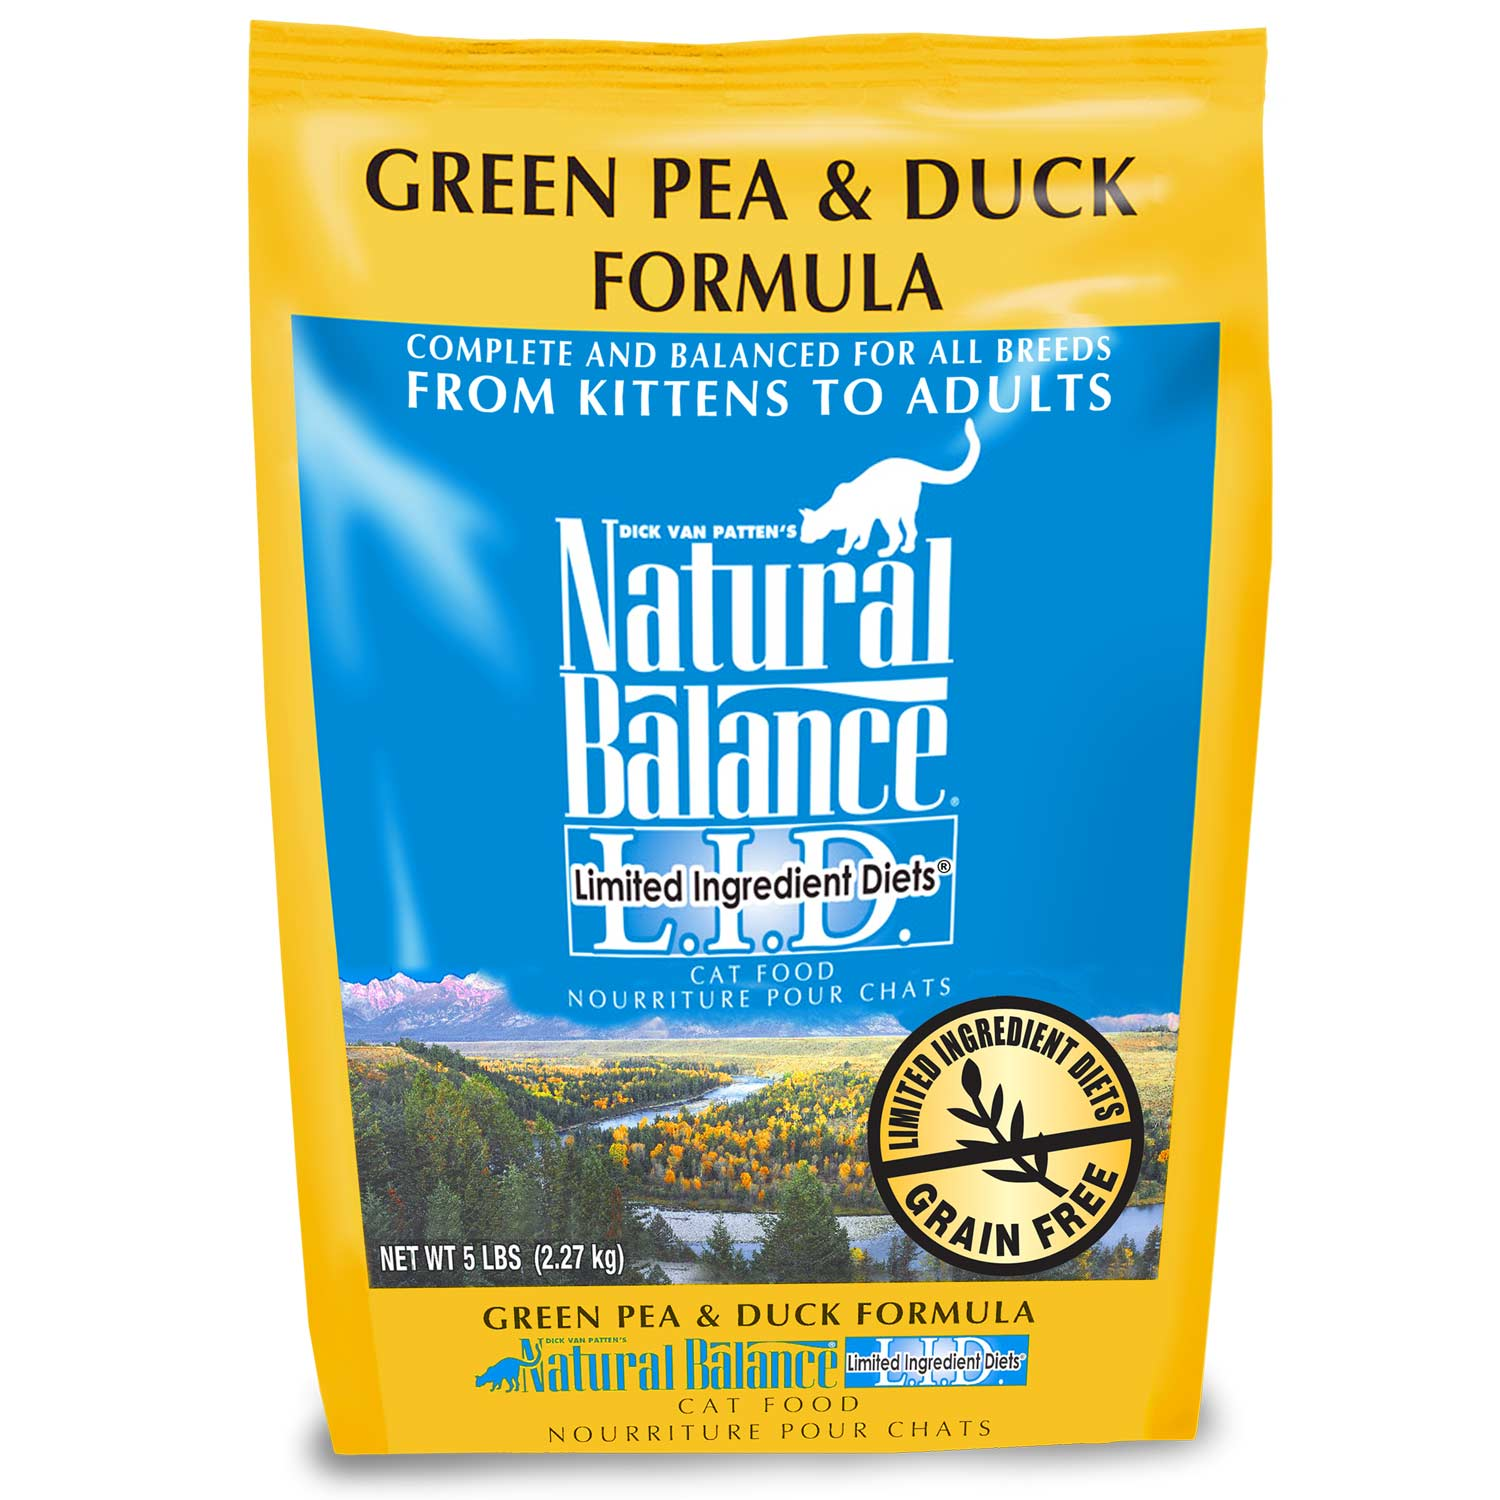 Natural Balance L.I.D. Limited Ingredient Diets Green Pea & Duck Formula Grain-Free Dry Cat Food 5lbs